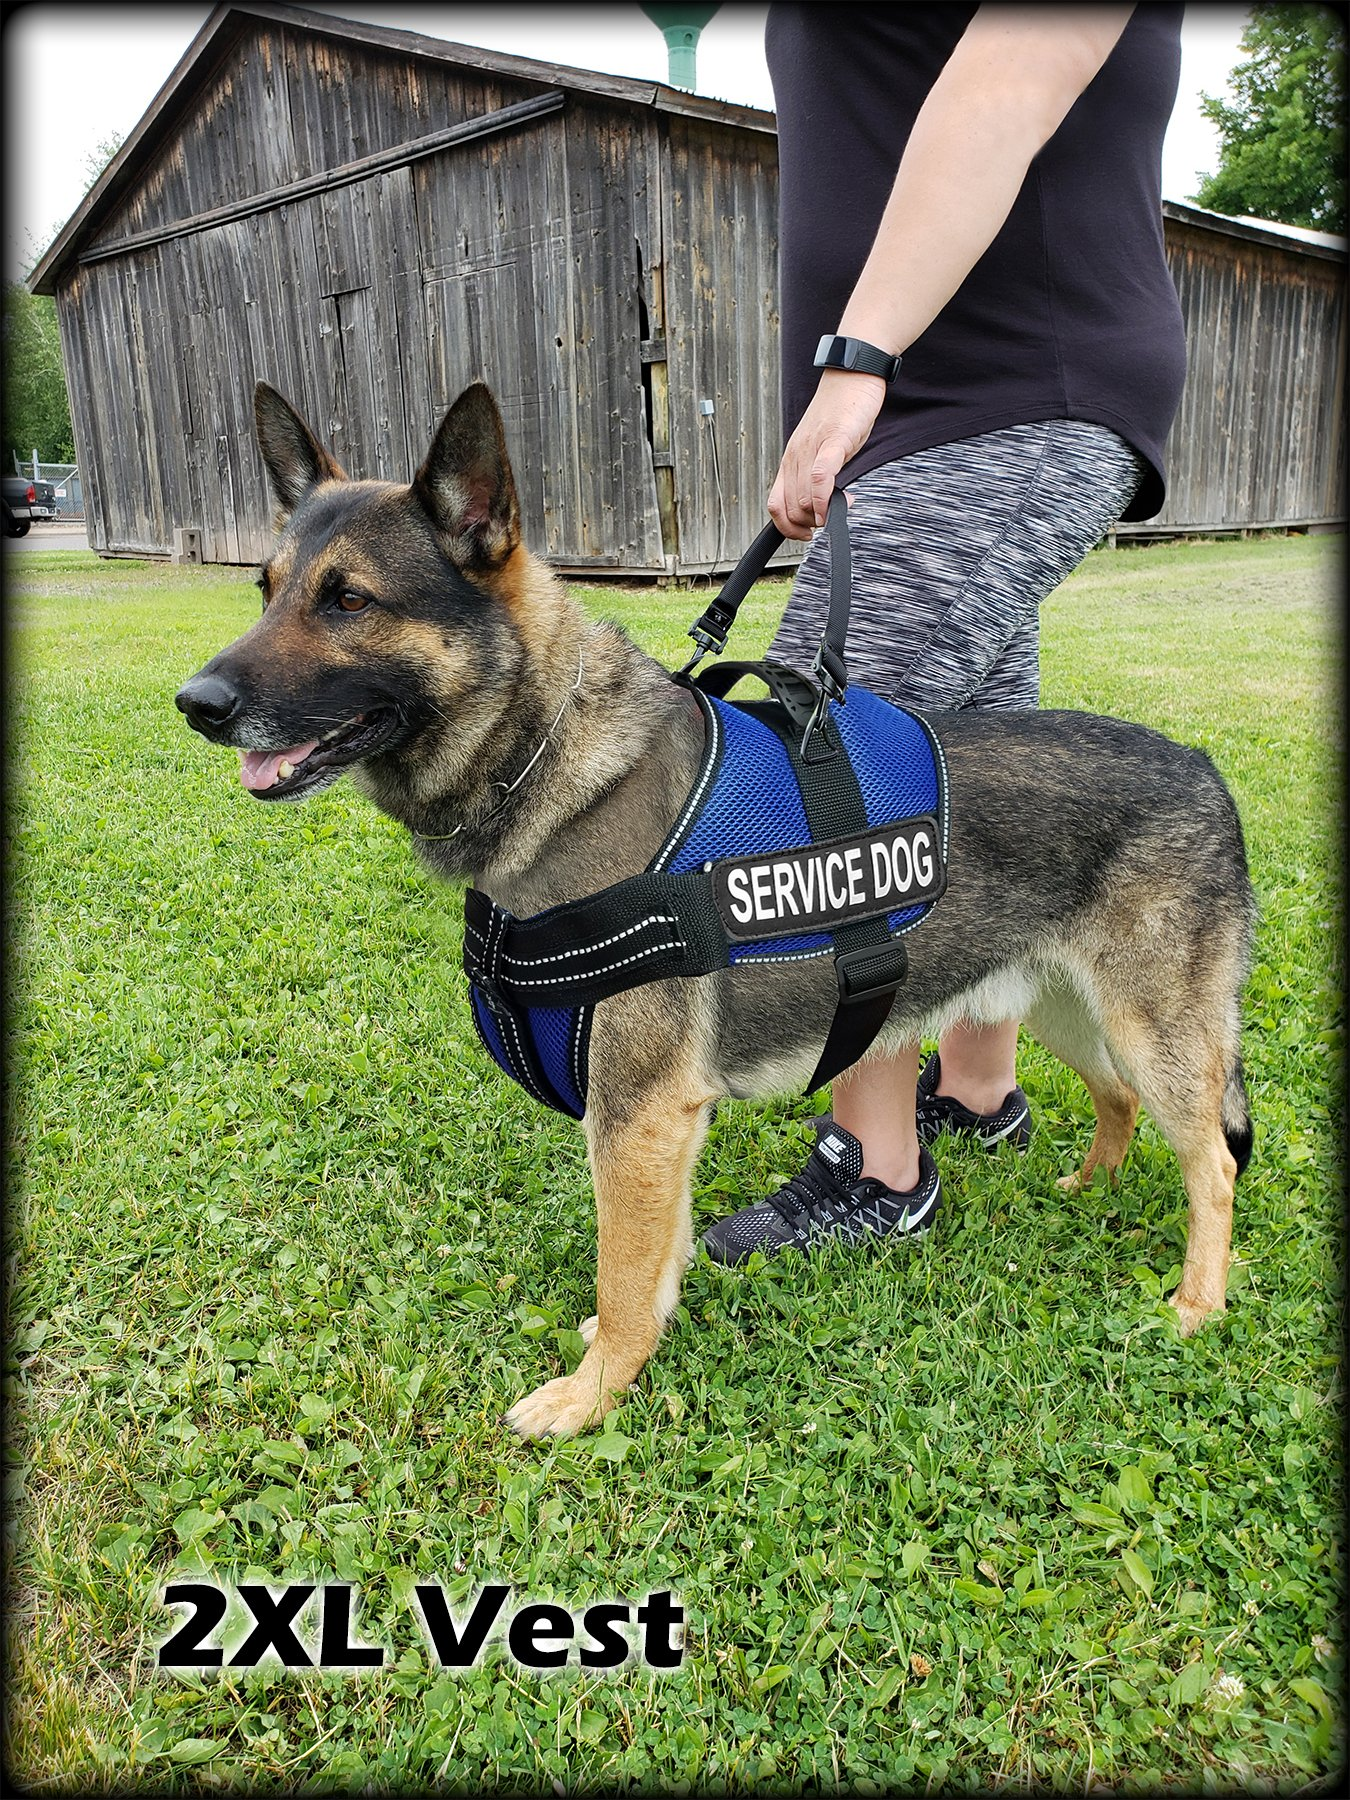 Activedogs Service Dog Kit Airtech Mesh Service Dog Vest Harness + Free Registered Service Dog ID + Clip-on Bridge Handle + 30 ADA/Federal Law Cards + Service Dog Travel Tag (L, Blue) by Activedogs (Image #3)